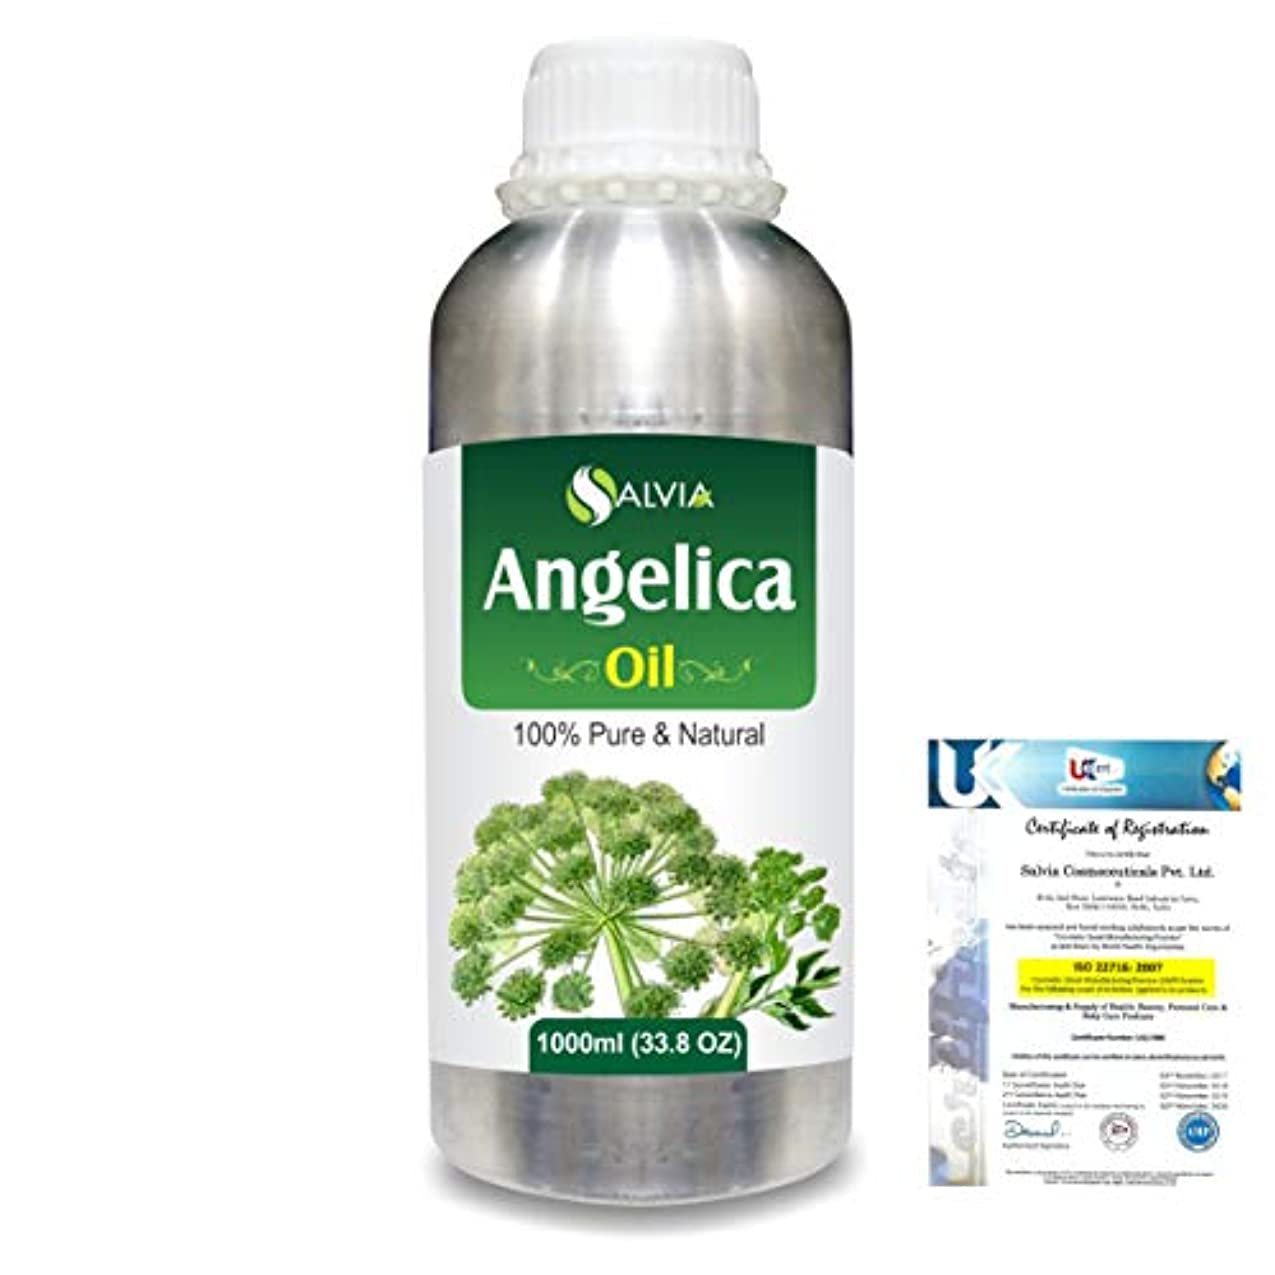 ロンドン首尾一貫したビヨンAngelica (Angelica archangelica) 100% Natural Pure Essential Oil 1000ml/33.8fl.oz.